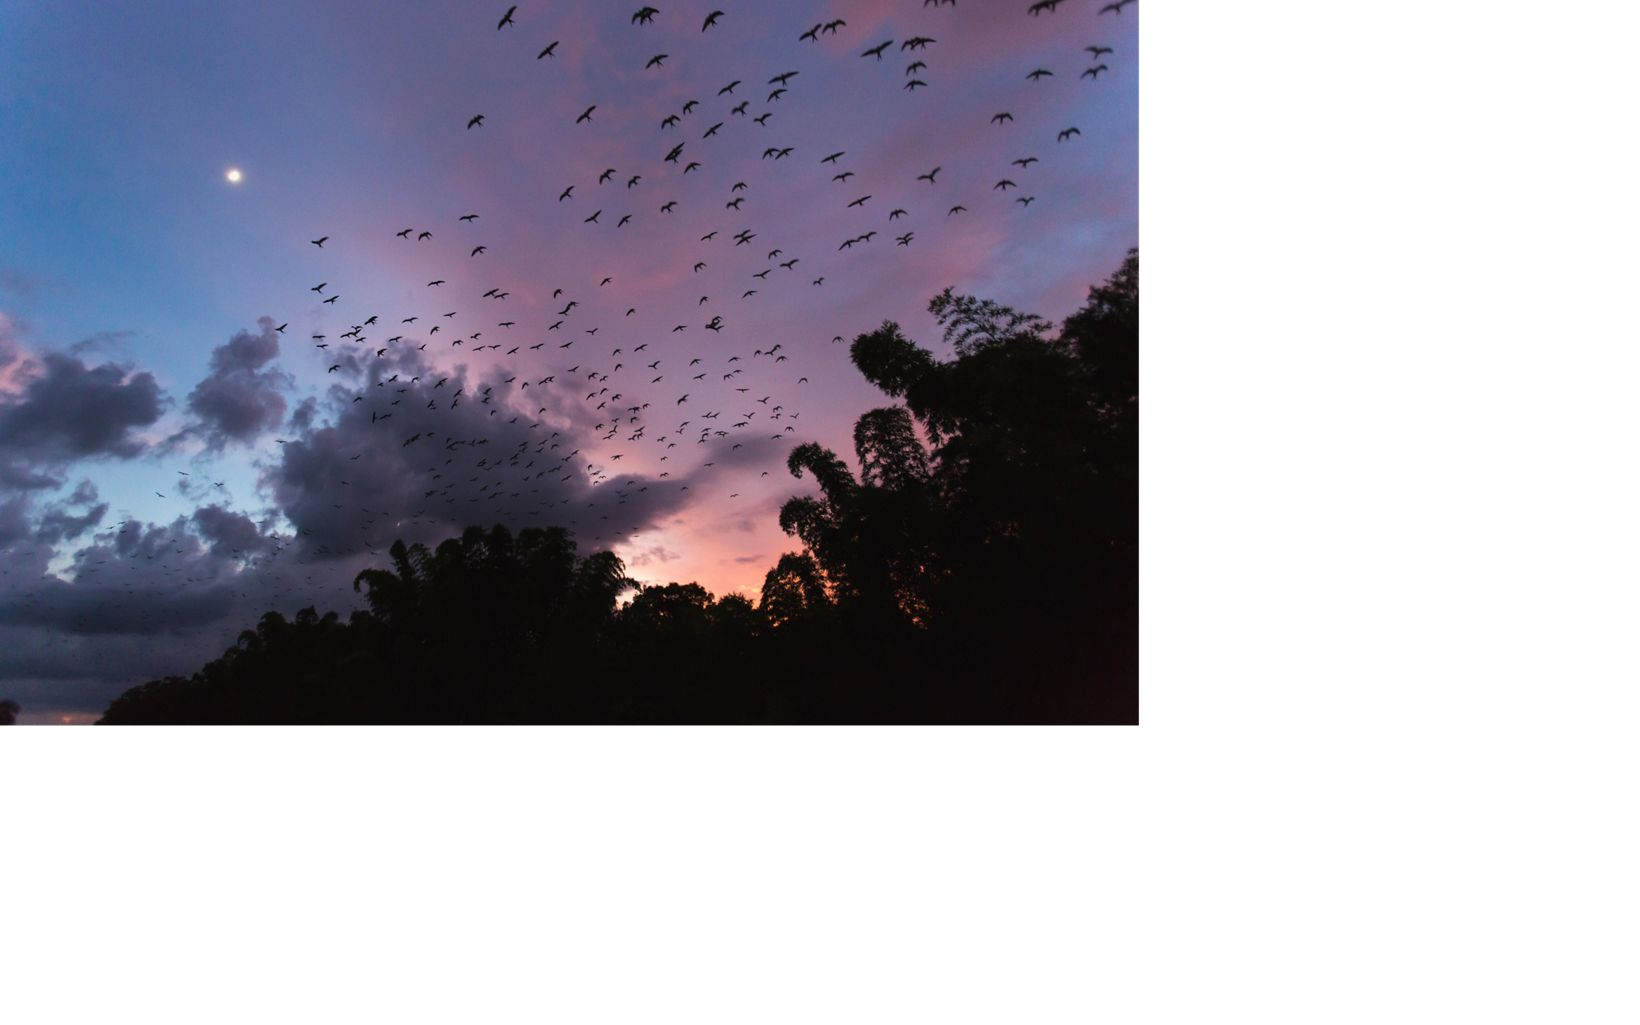 a flock of birds  at sunset above some silhouetted trees